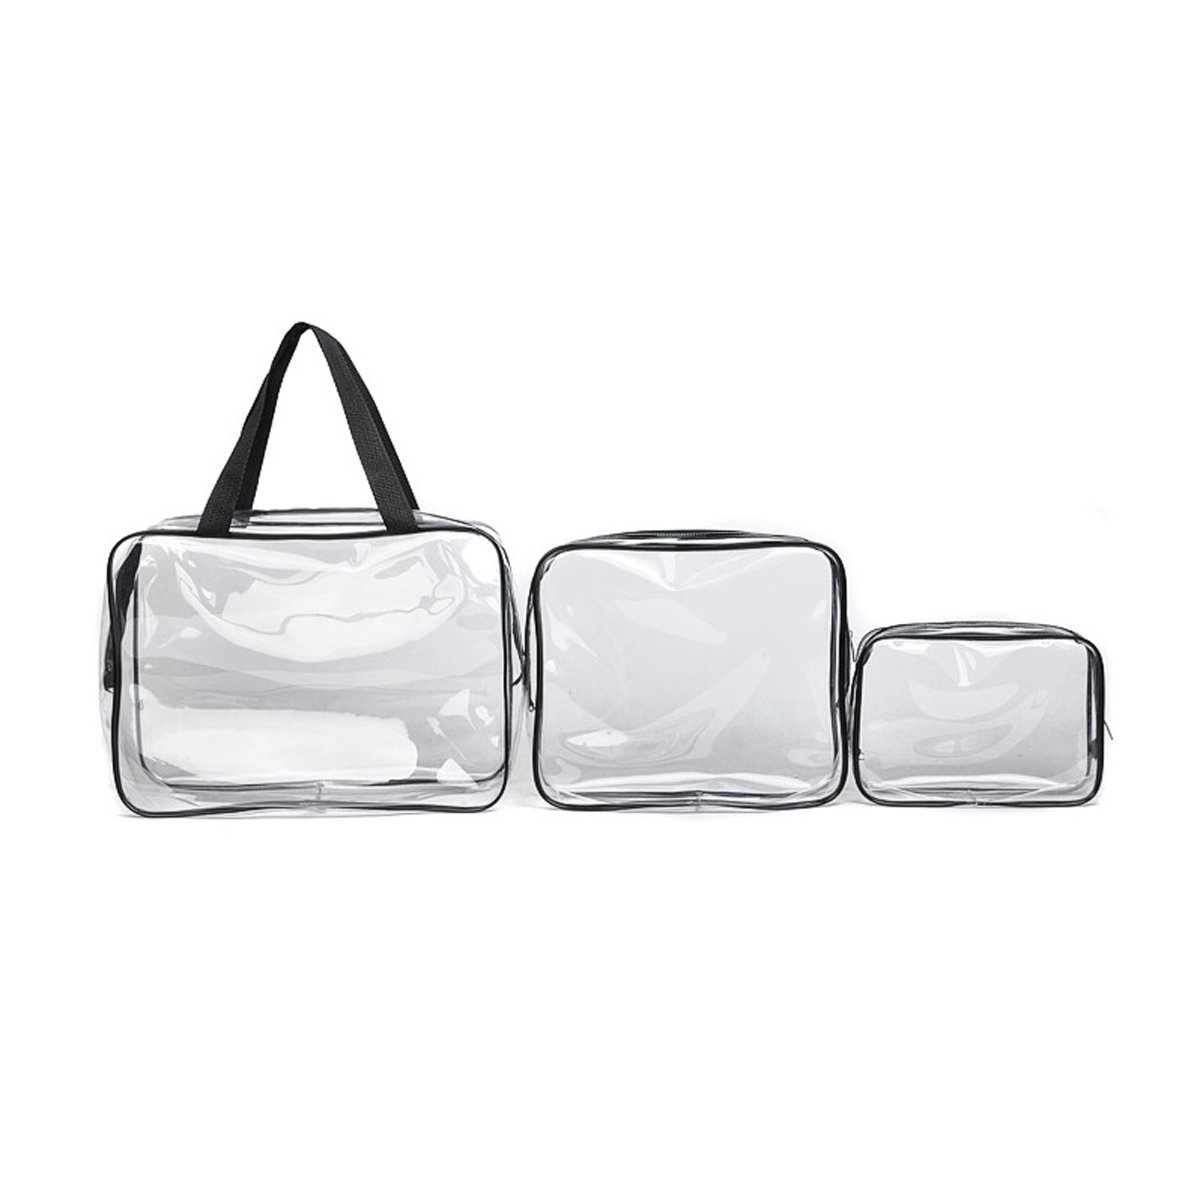 TECHSON 3 Pack Crystal Clear Makeup Bags, Travel Portable Cosmetic Bag Set, Waterproof Transparent Toiletry Organizer Storage Bags with Handle Straps and Zippers (PVC)